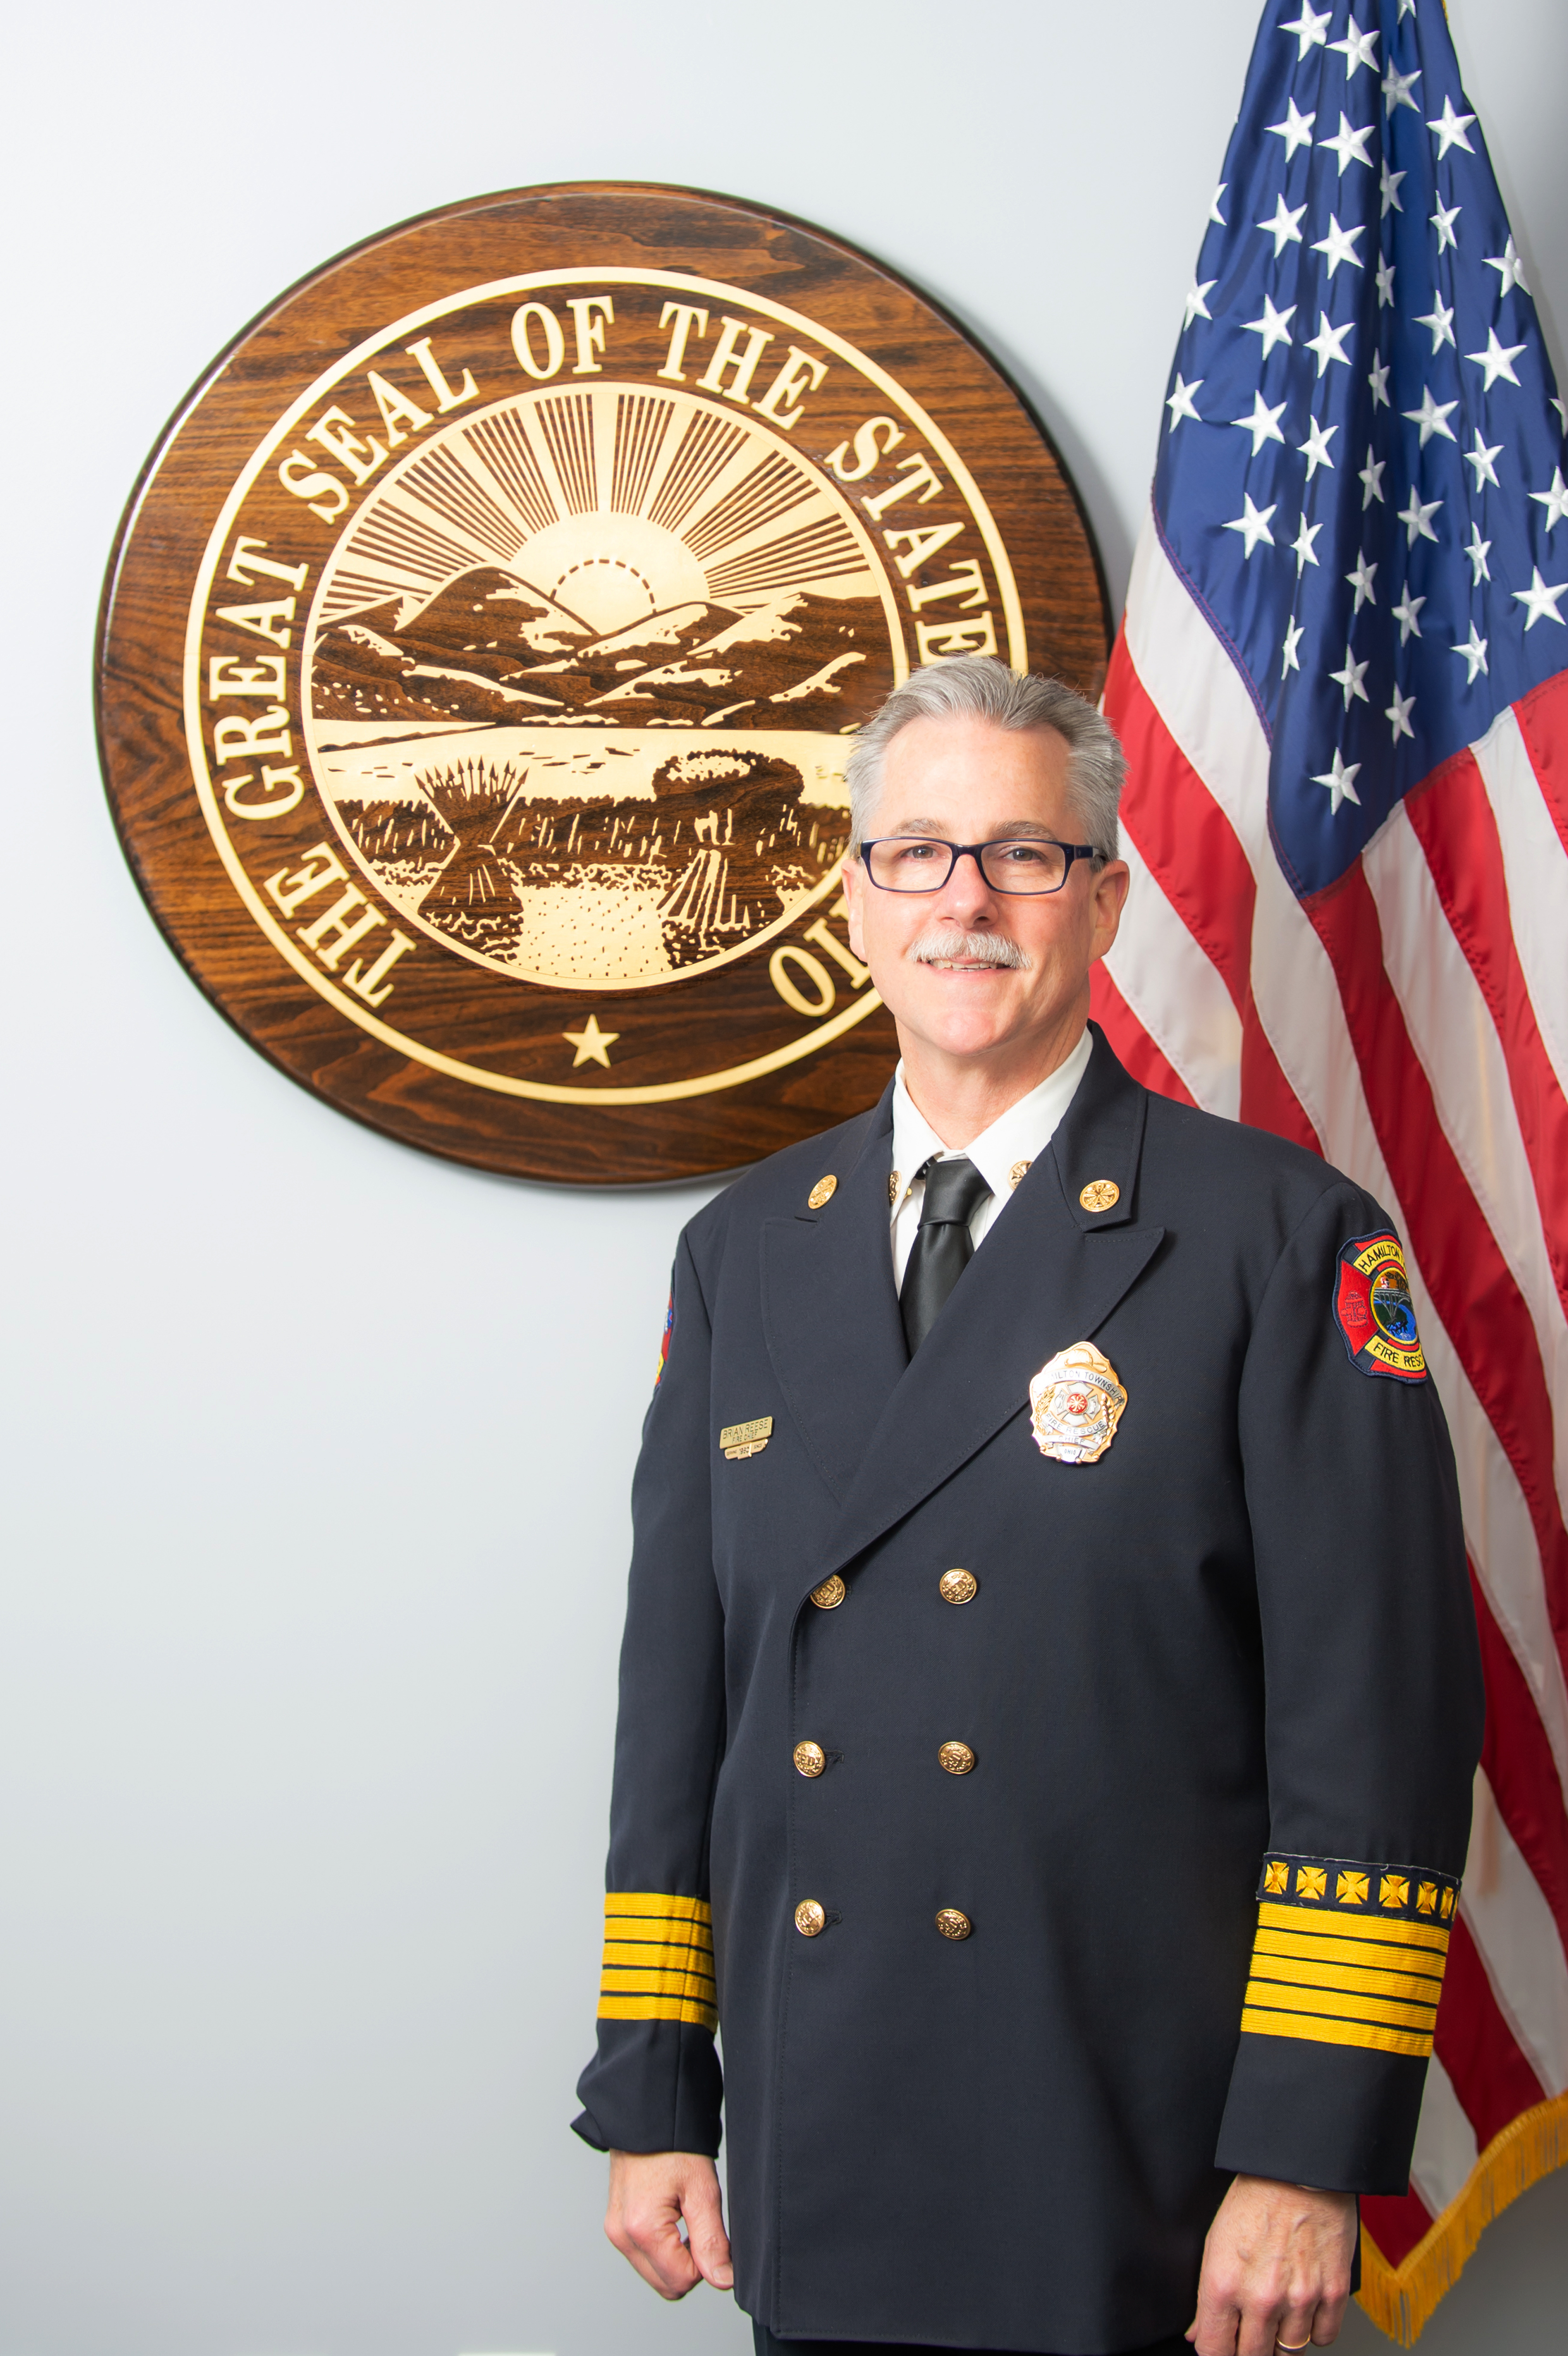 Fire Chief Reese